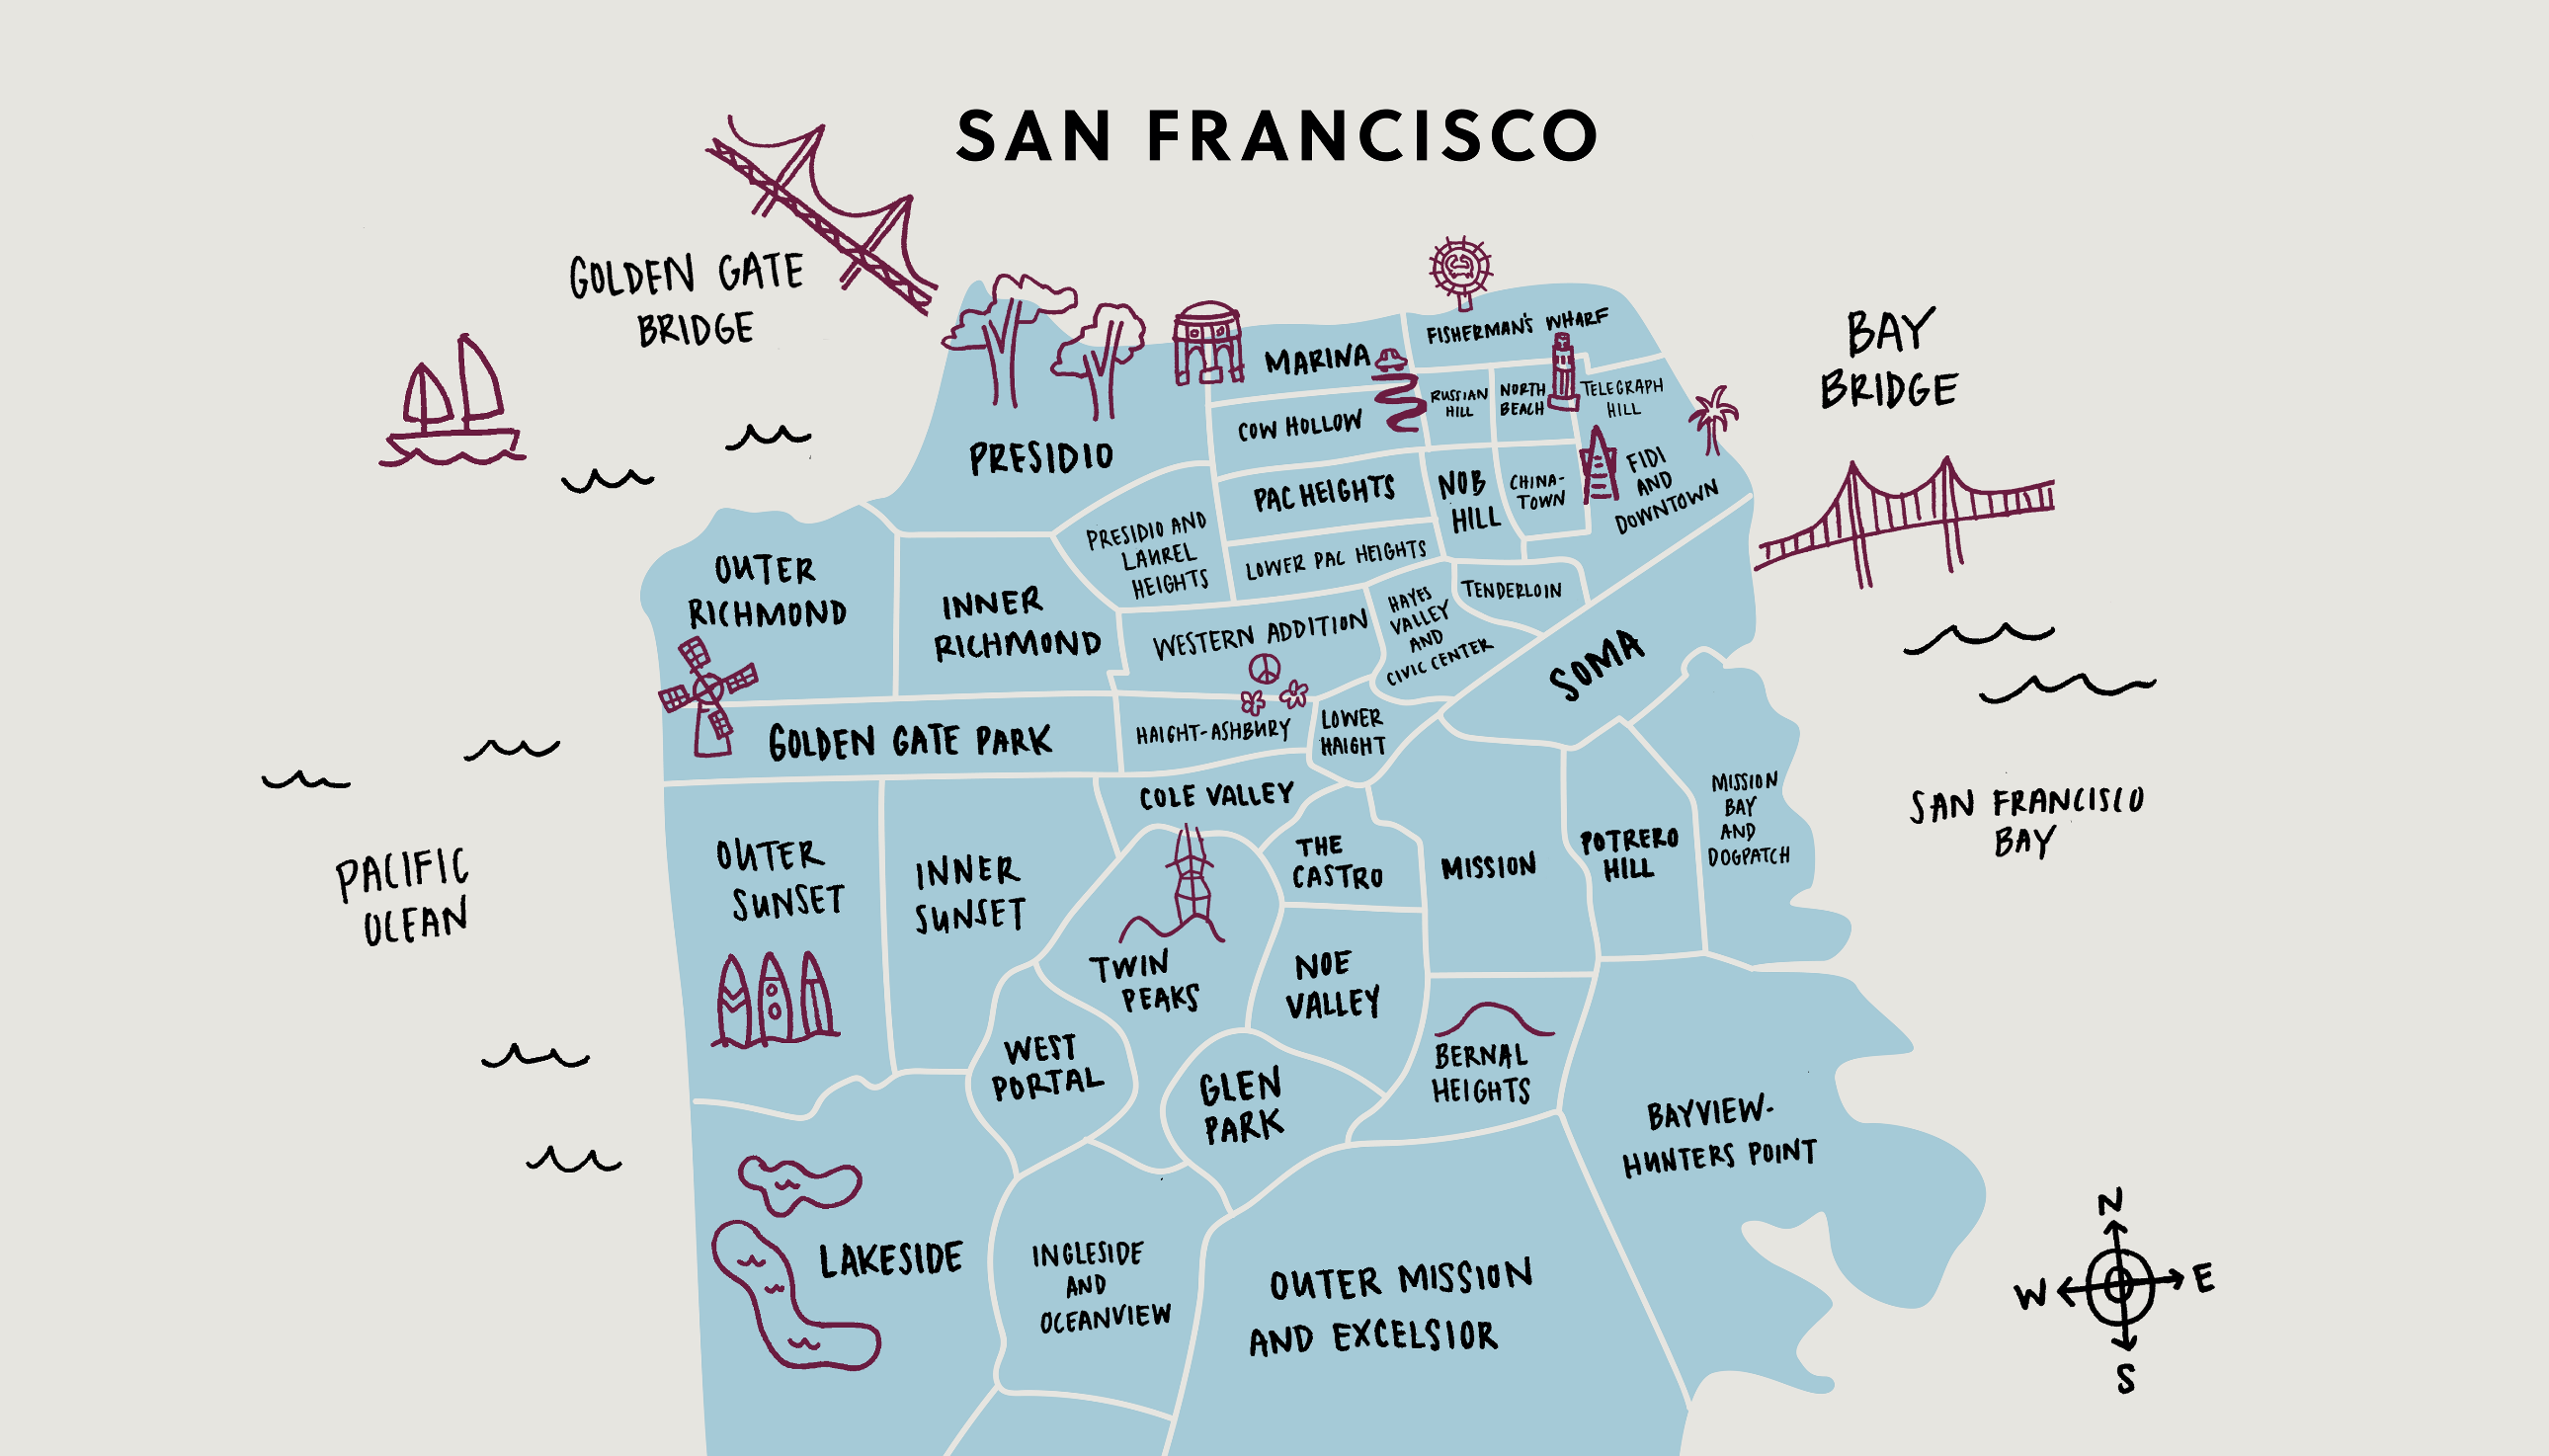 A Guide to the Neighborhoods of San Francisco